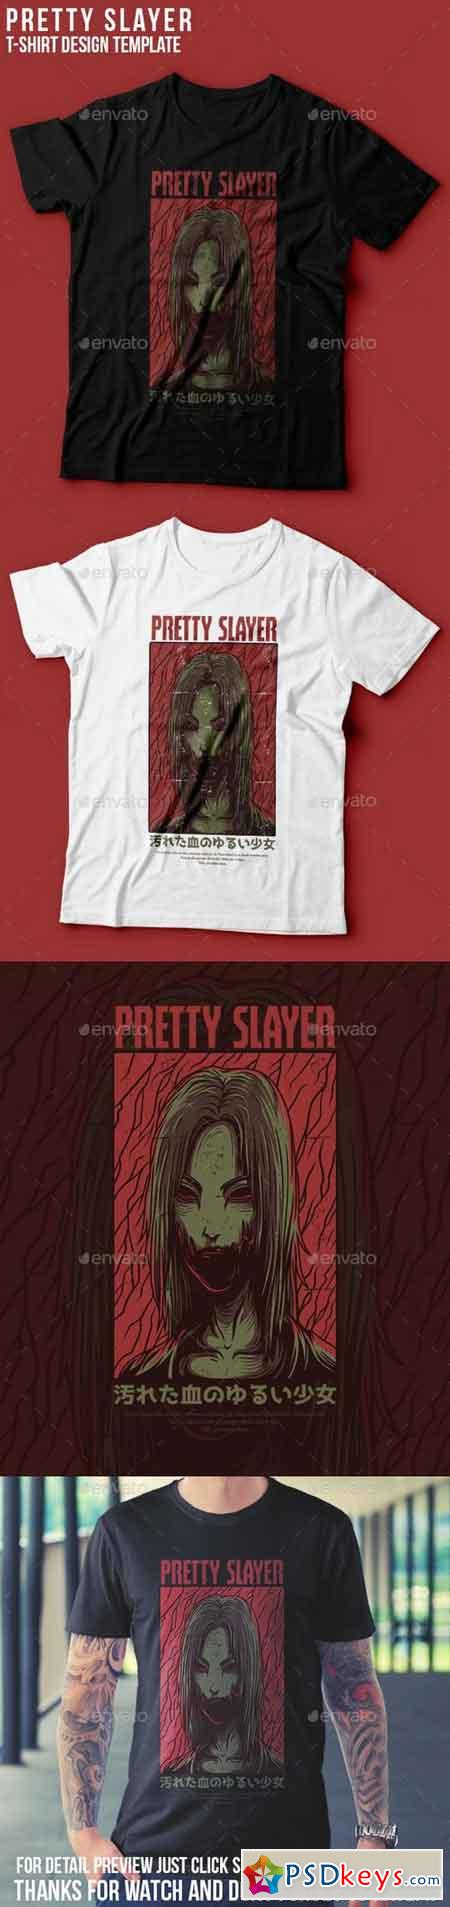 Pretty Slayer T-Shirt Design 22801541